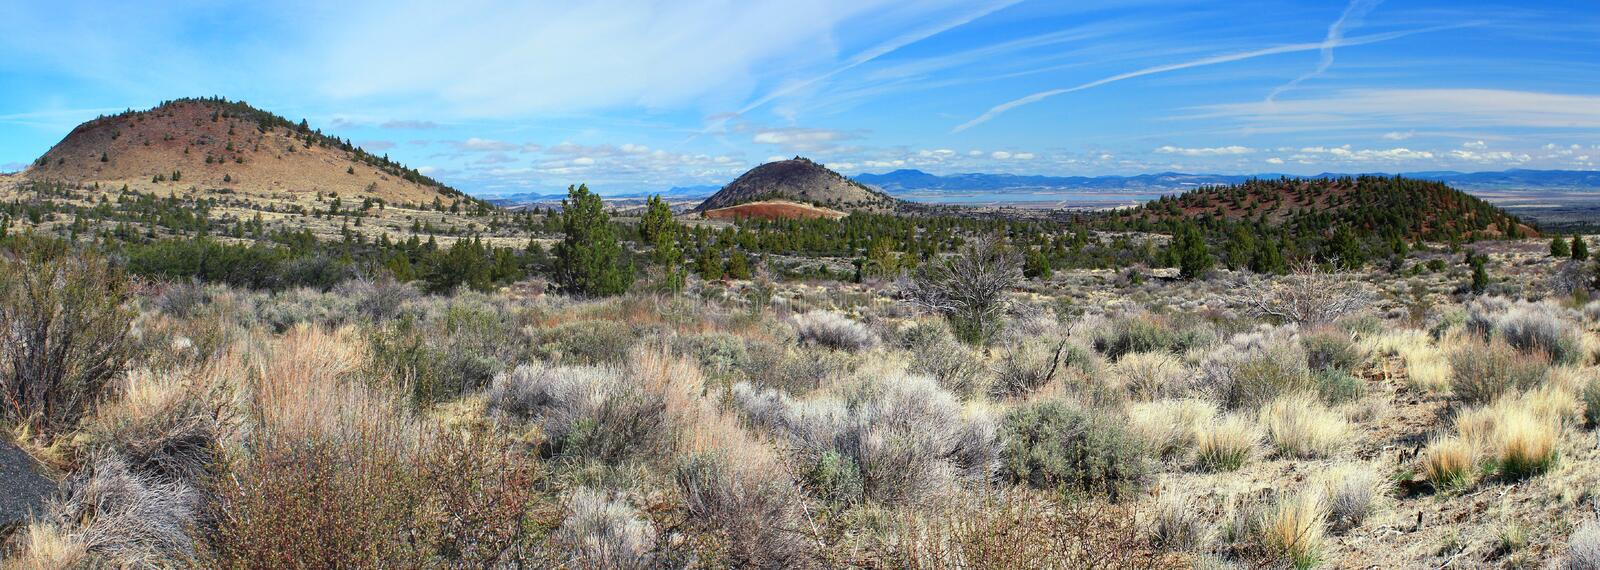 Landscape Panorama of Cinder Cones from Sunshine Cave Entrance, Lava Beds National Monument, California, USA. Panorama of Sagebrush and Juniper trees dominating stock photography